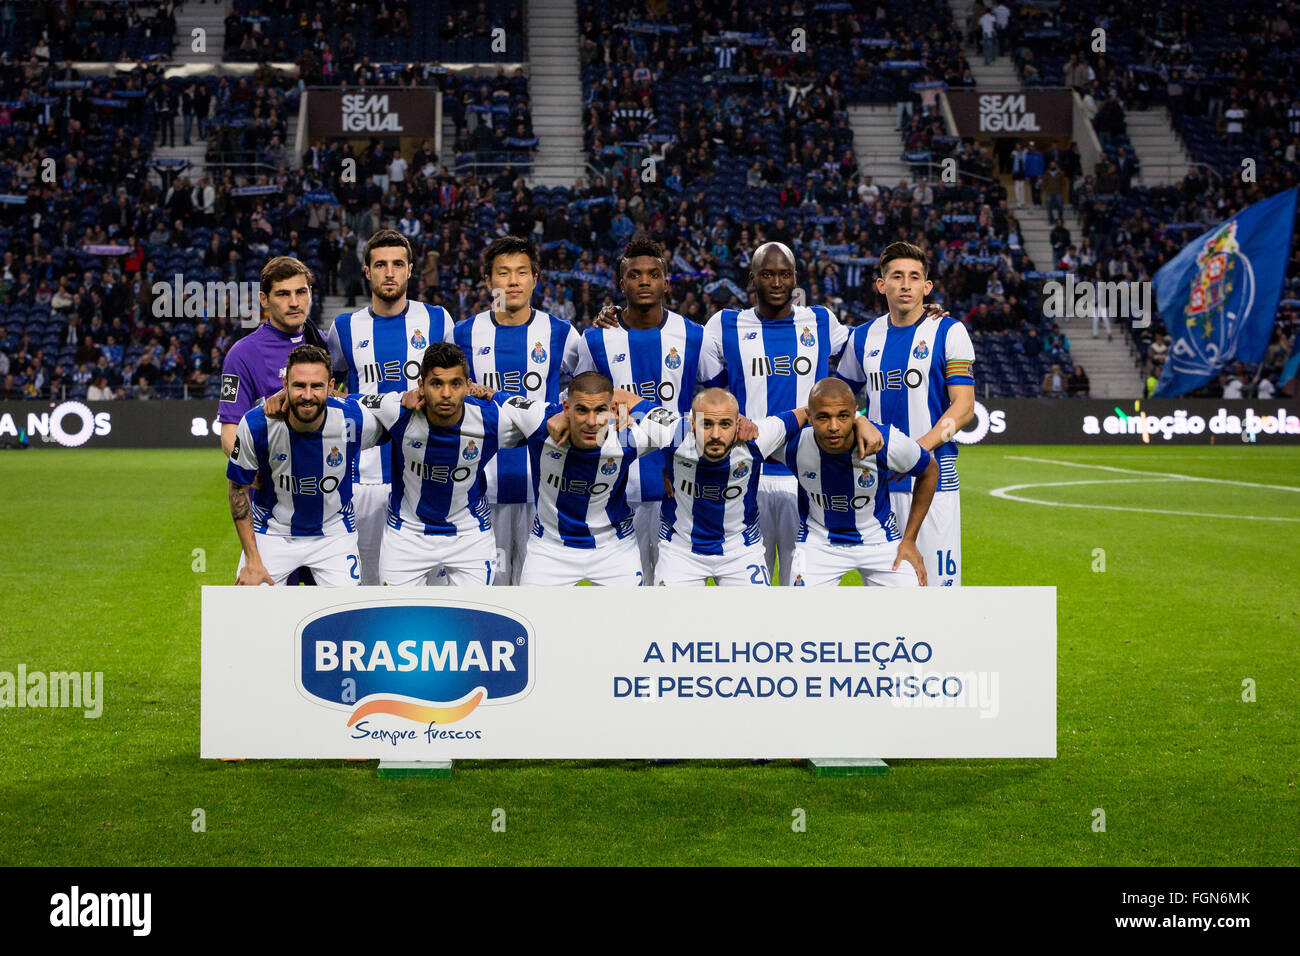 Dragon Stadium, Portugal. 21st February, 2016. FC Porto's team line up before the Premier League 2015/16 round - Stock Image